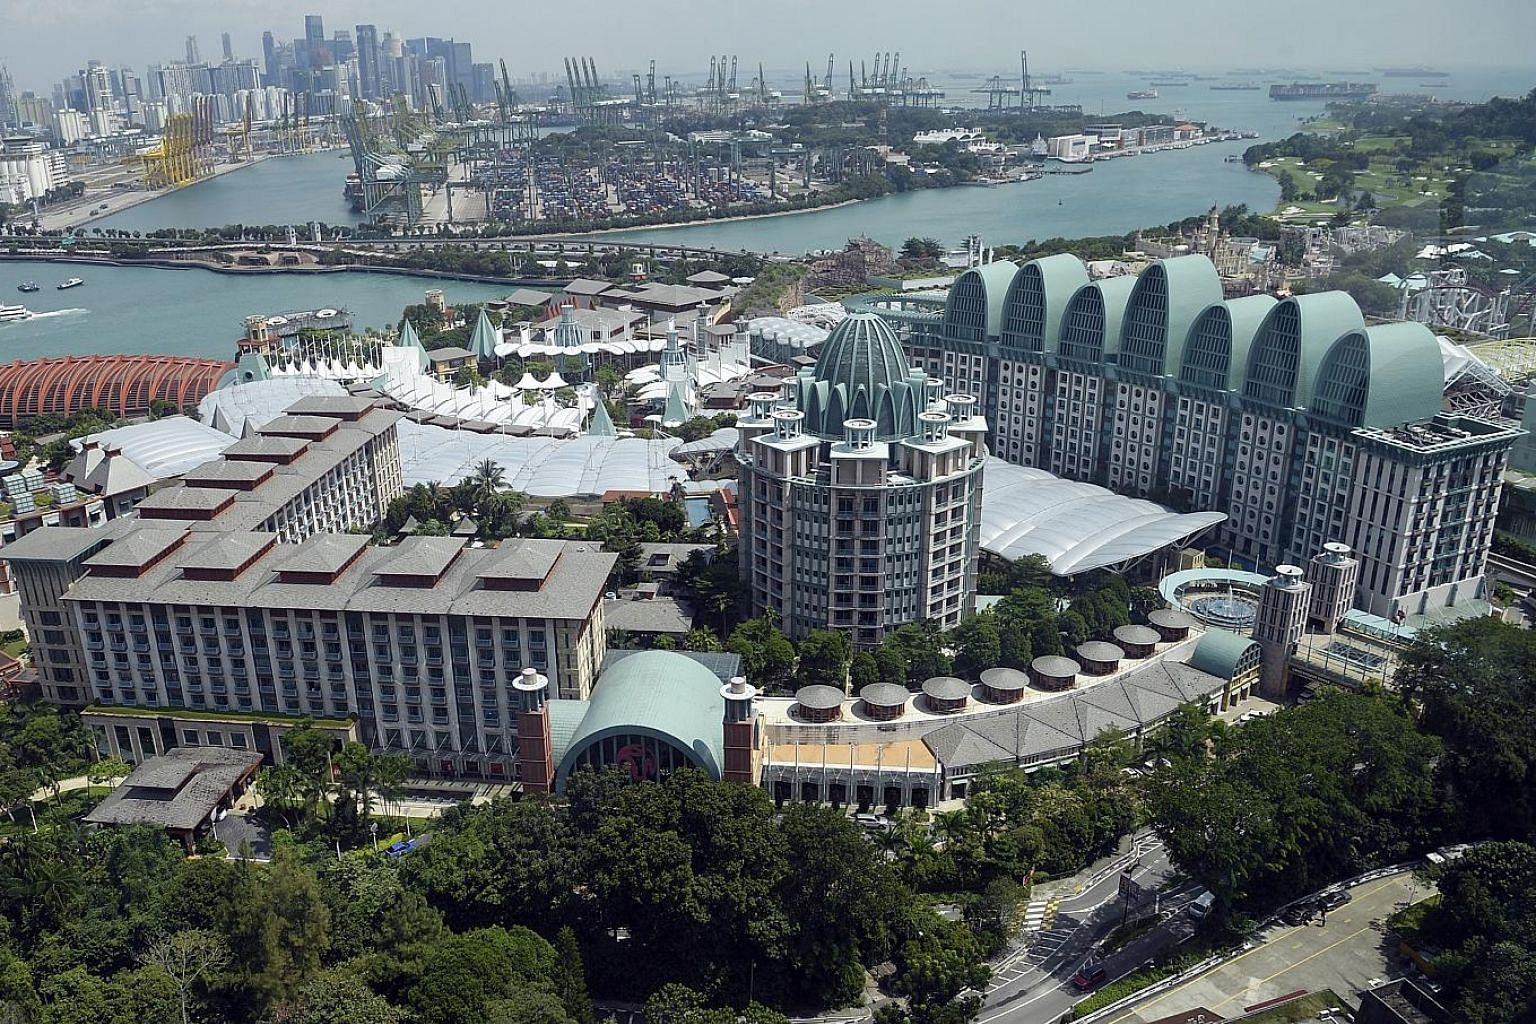 The redevelopment plan gives Genting Singapore an option to expand its gaming area and the resort's total gross floor area. Fitch believes Genting Singapore will maintain a stable dividend payout of around 3.5 cent per share during this period of hig